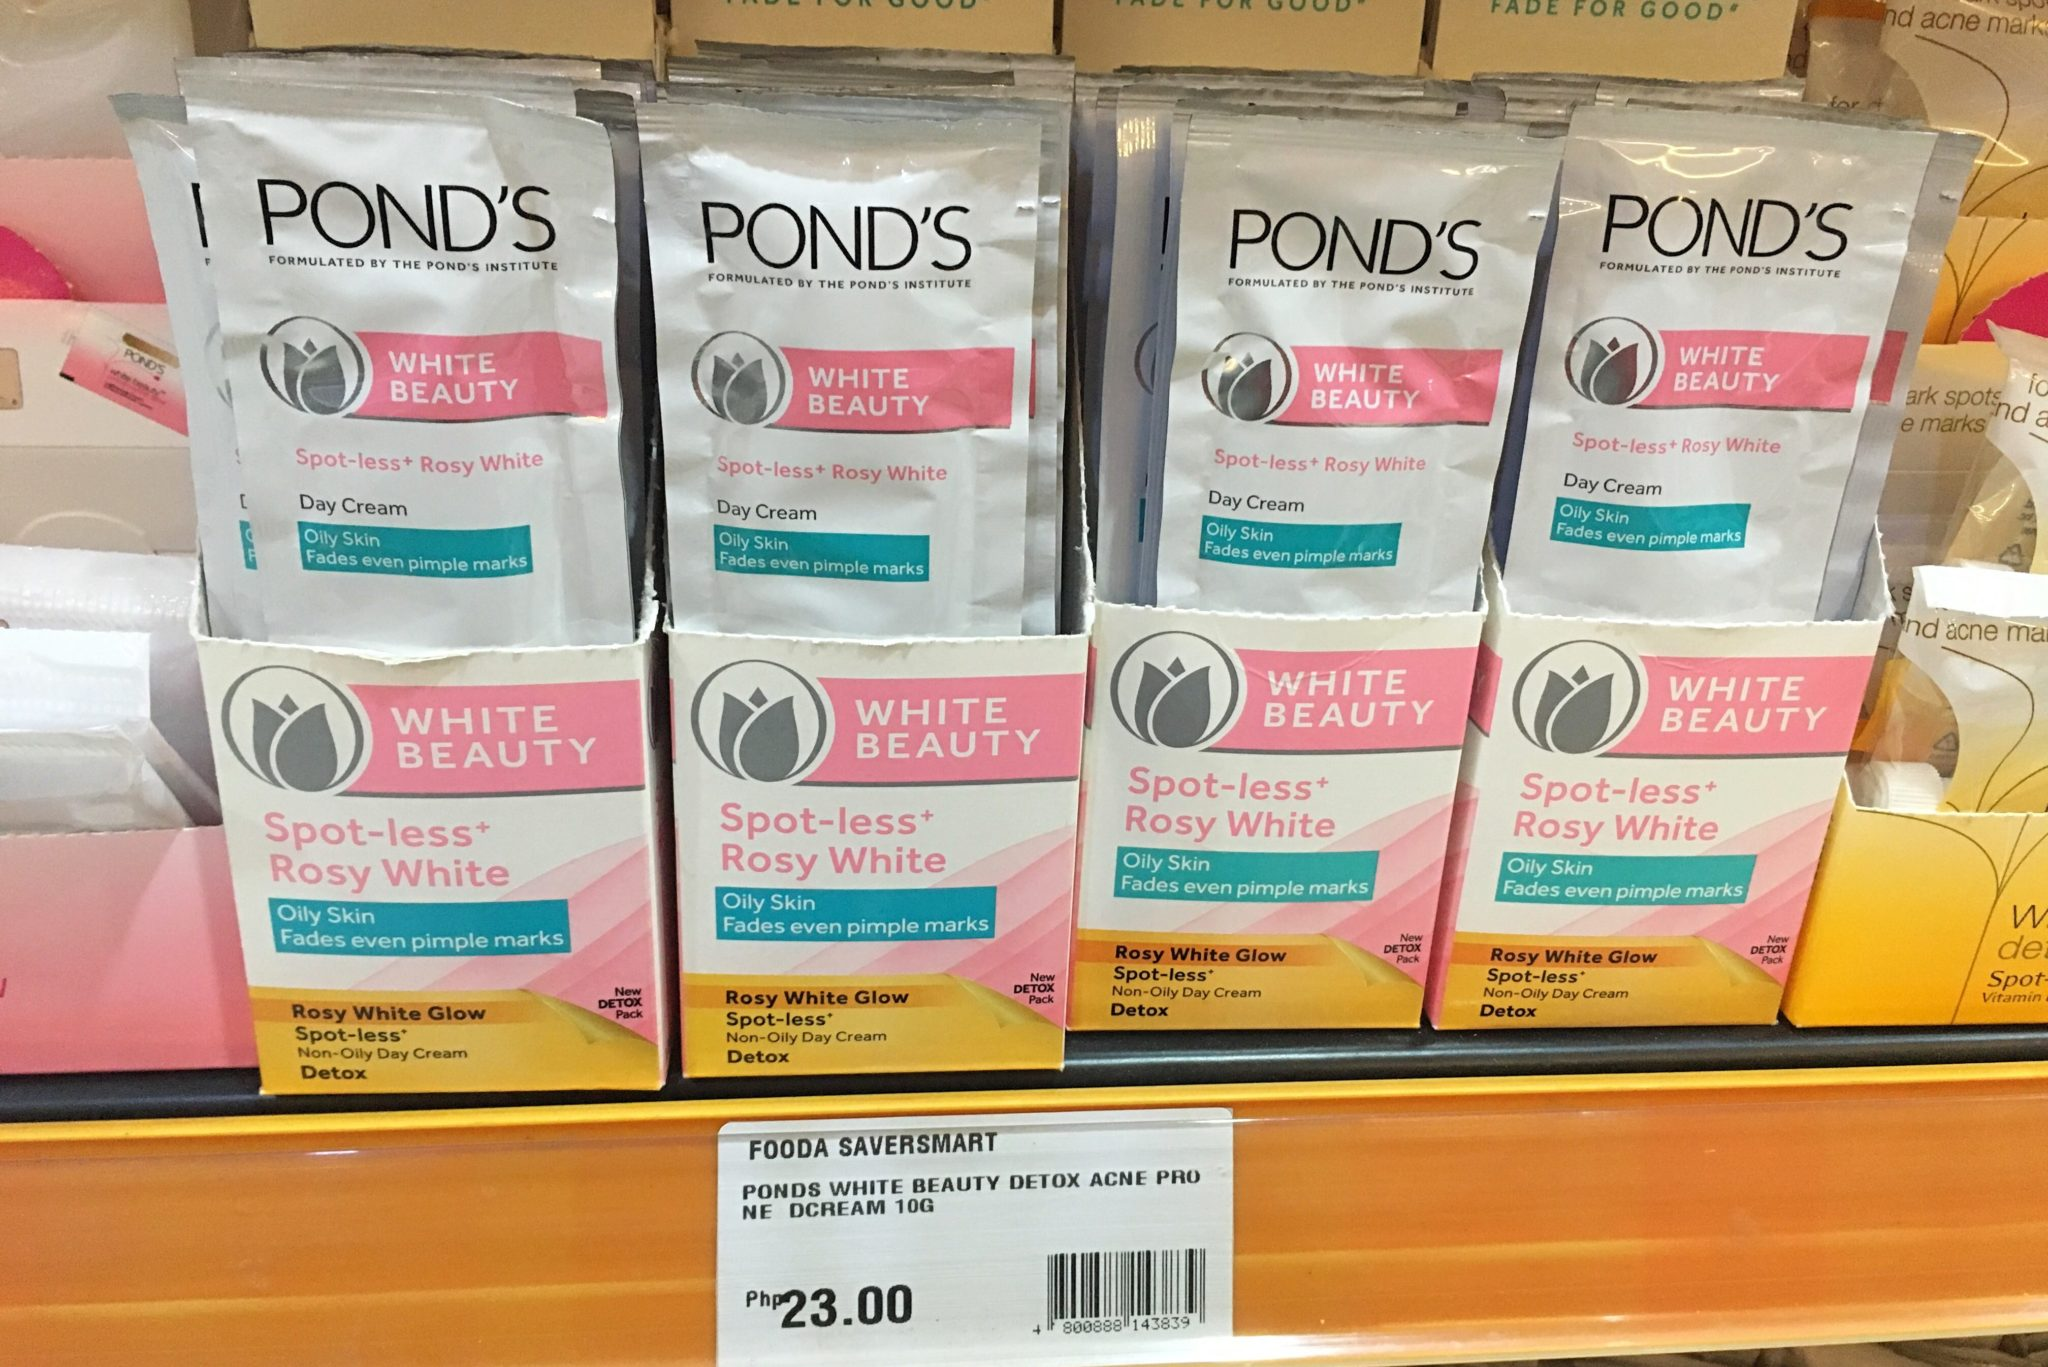 Takahari English Academy for Parents and Students in Cebu Island! PONDS (Pons) Day Cream)